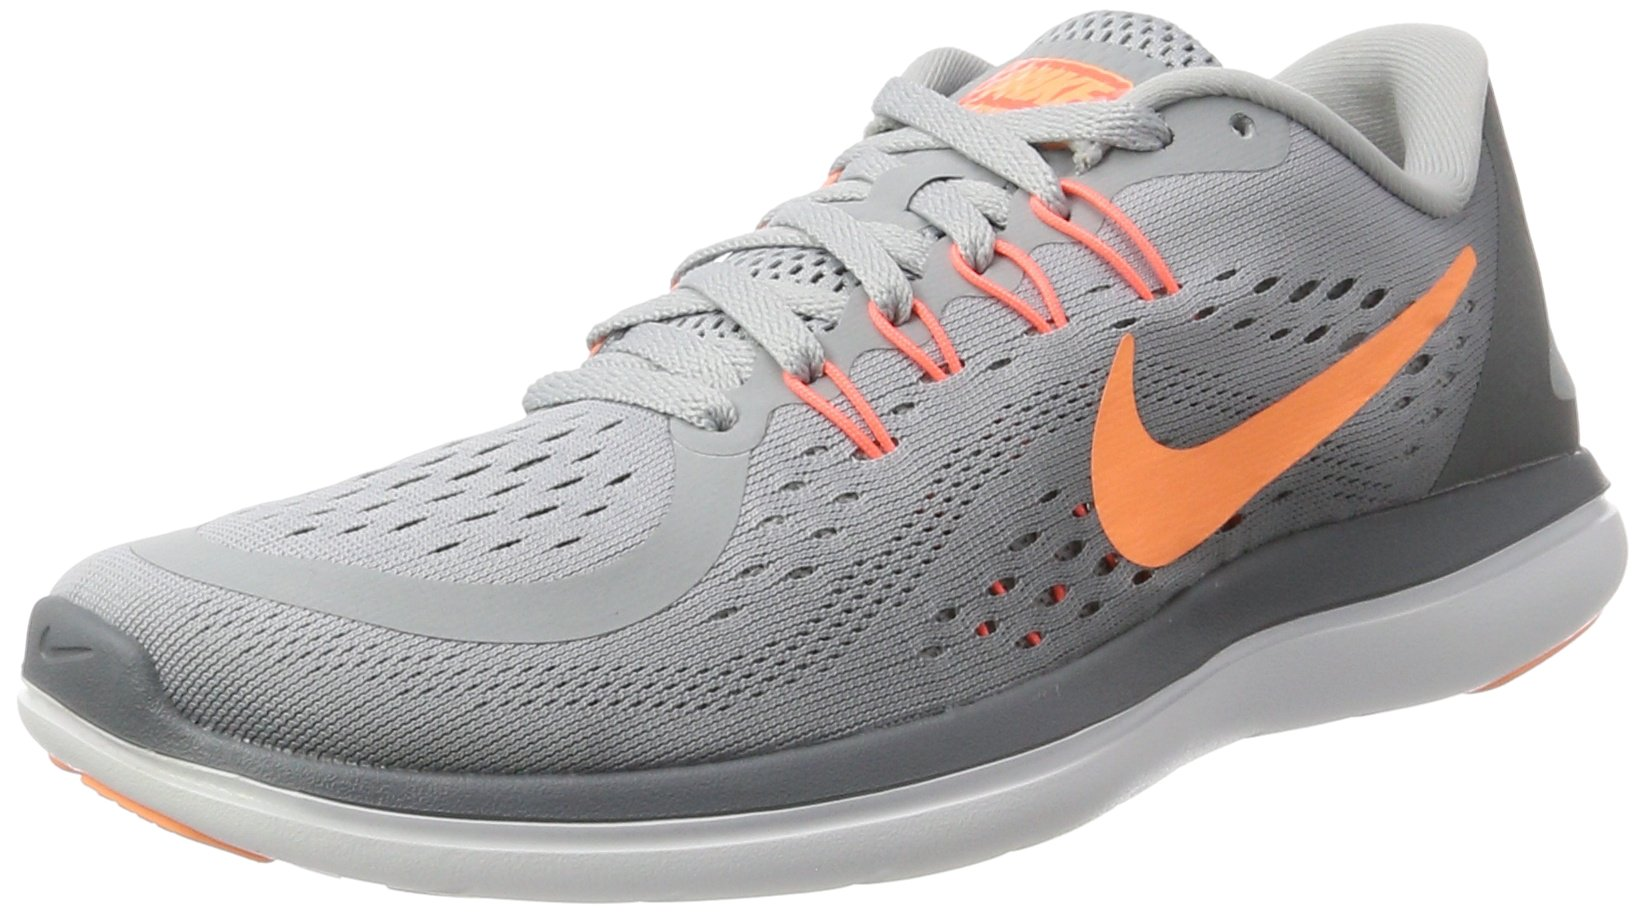 NIKE Women's Flex 2017 RN Running Shoe Wolf Grey/Sunset Glow/Cool Grey Size 9.5 M US